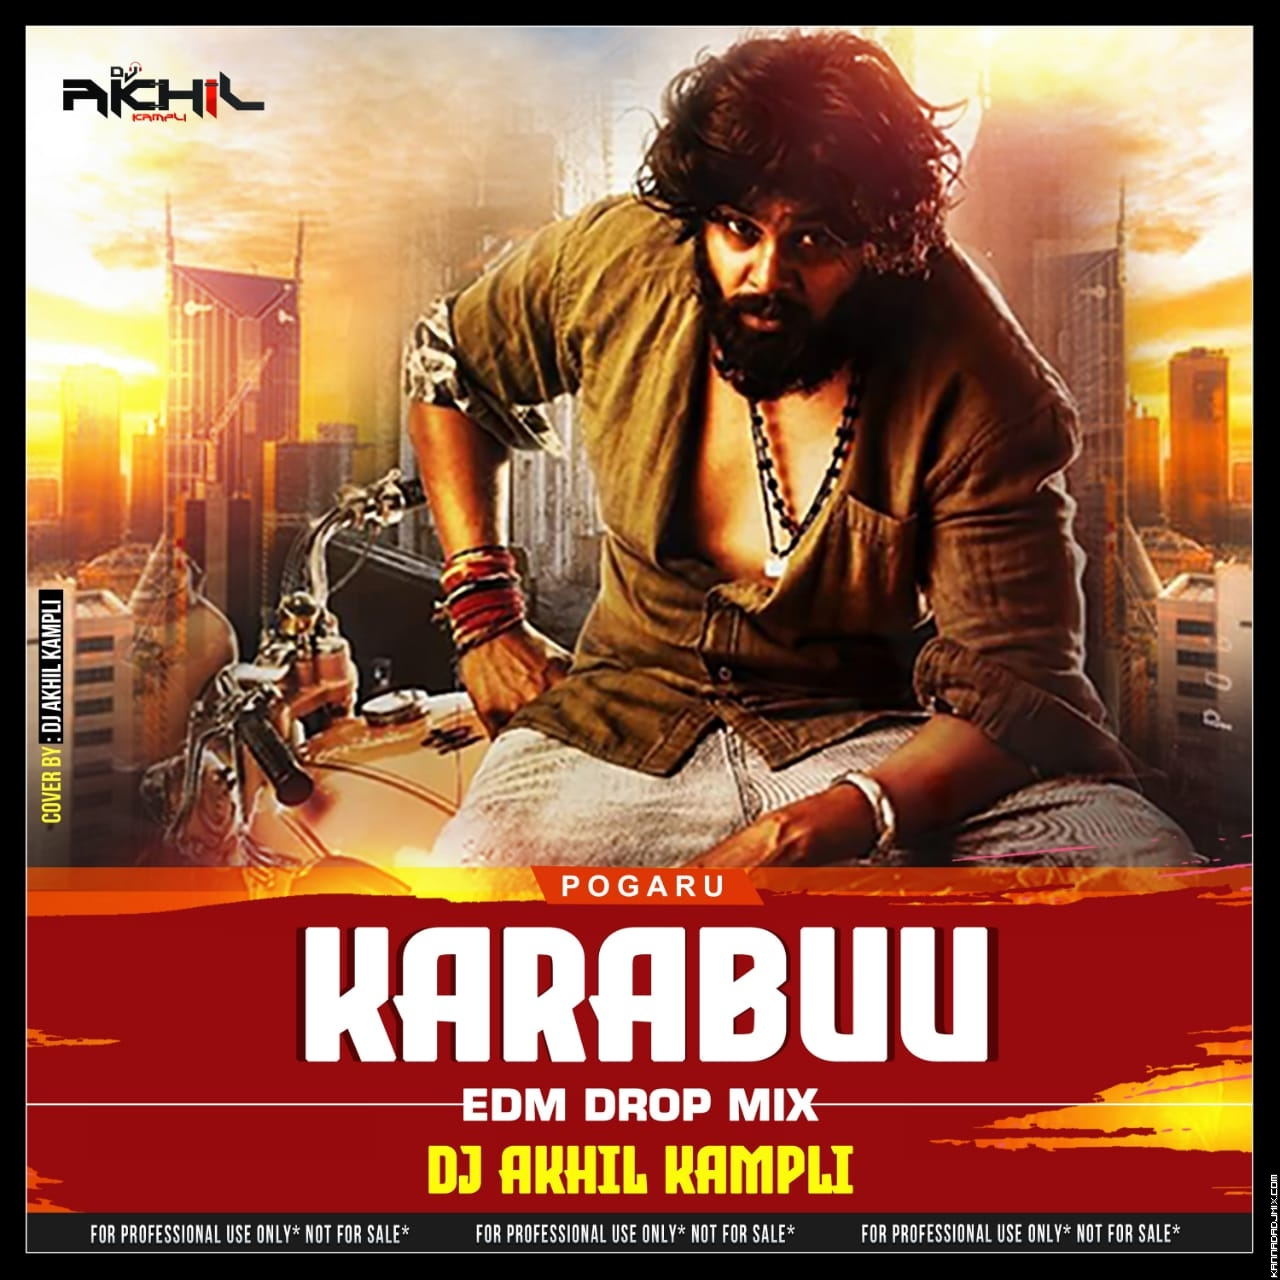 KARABUU EDM DROP MIX DJ AKHIL KAMPLI.mp3